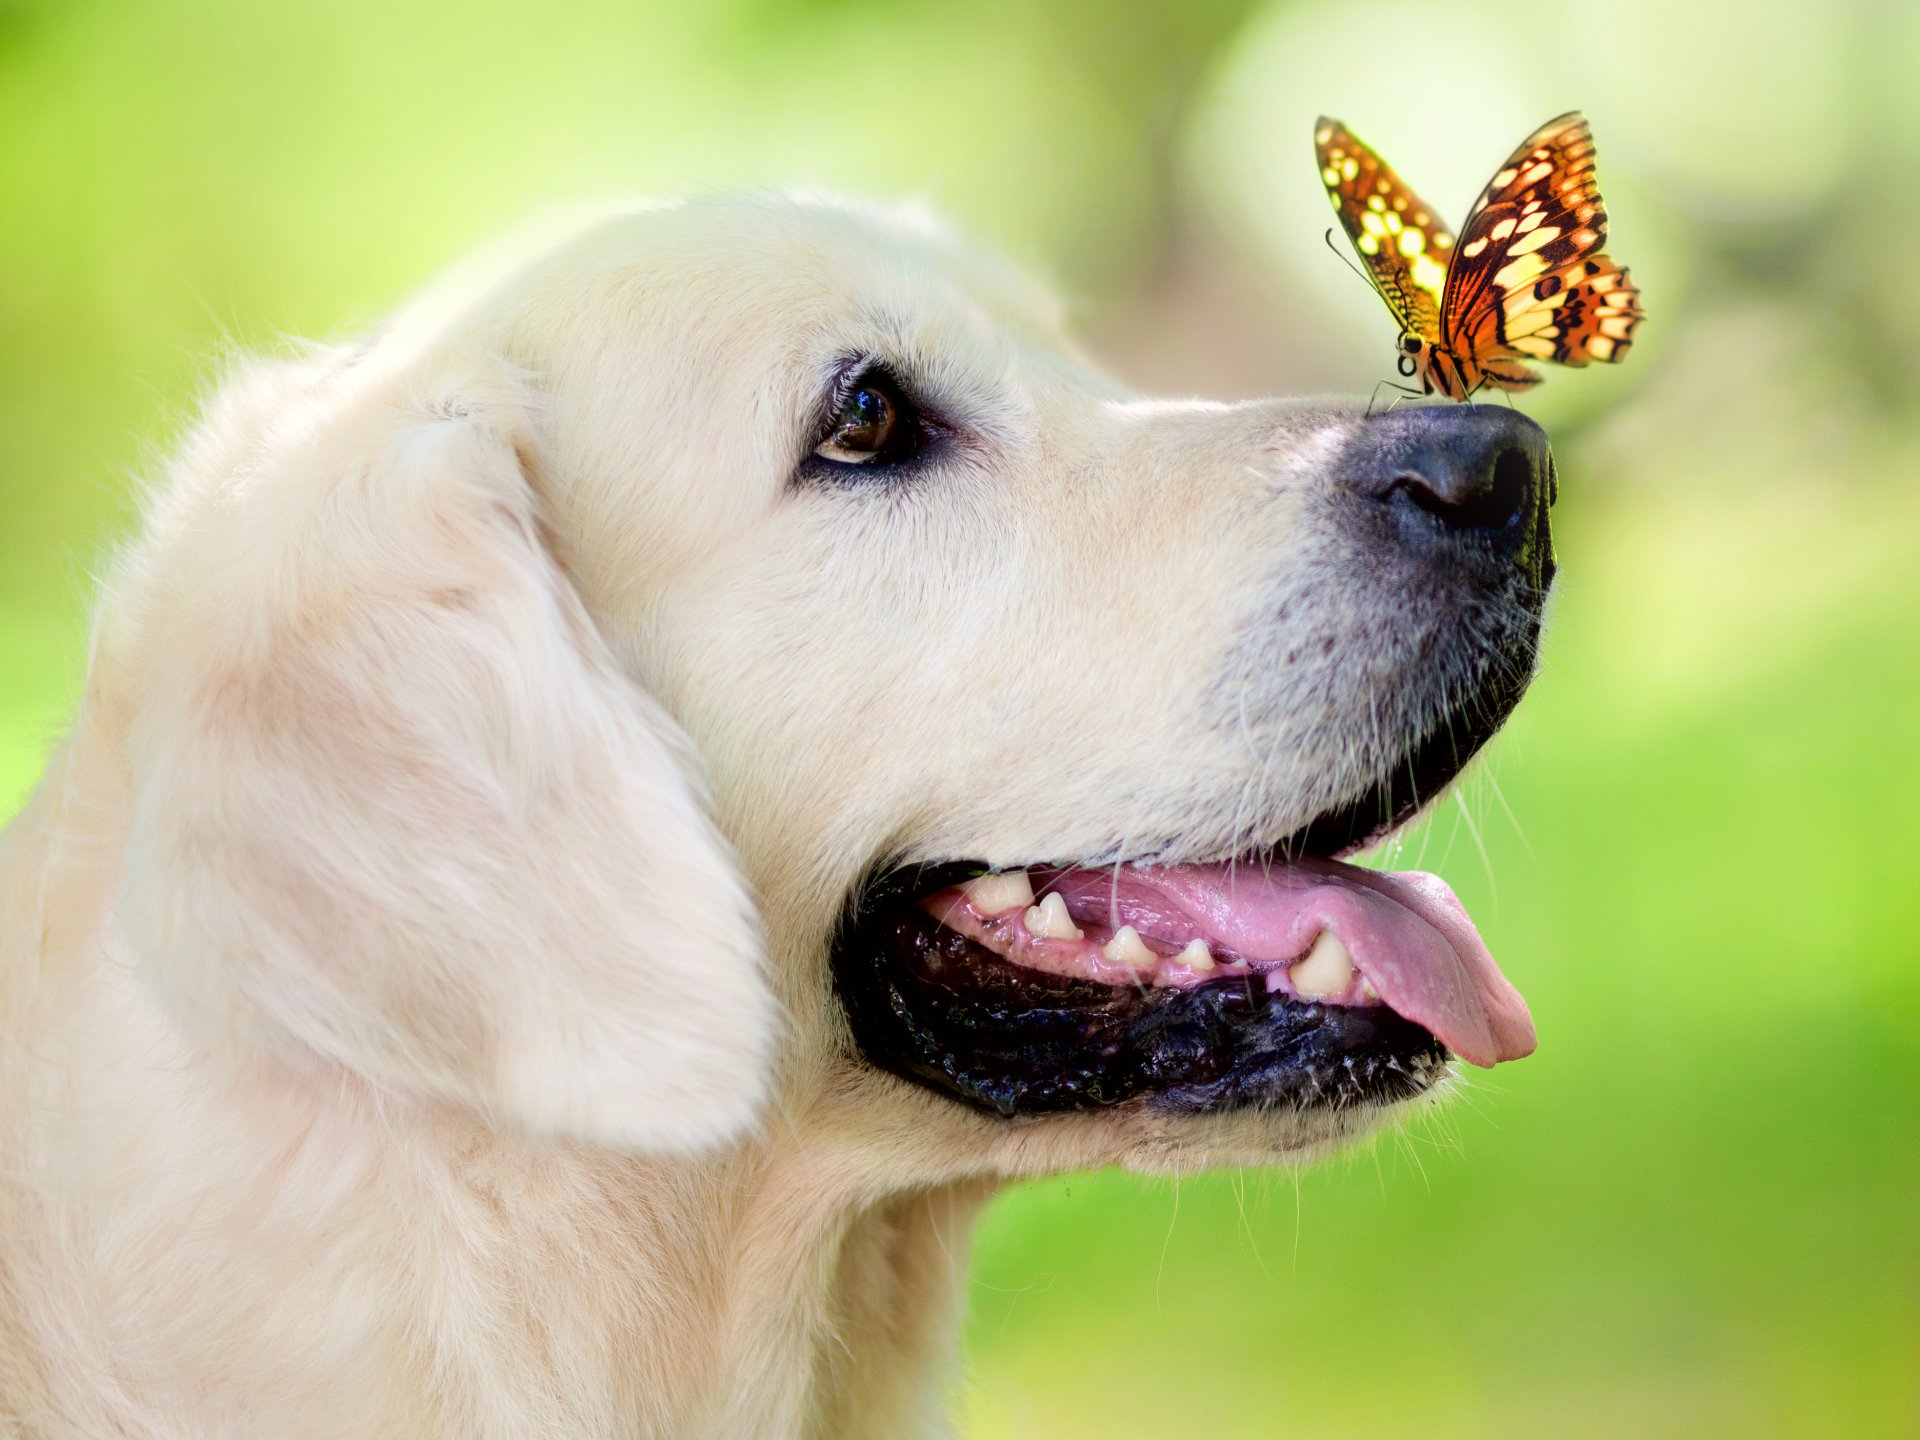 Animal - Labrador Retriever  Dog Animal Butterfly Muzzle Close-Up Wallpaper